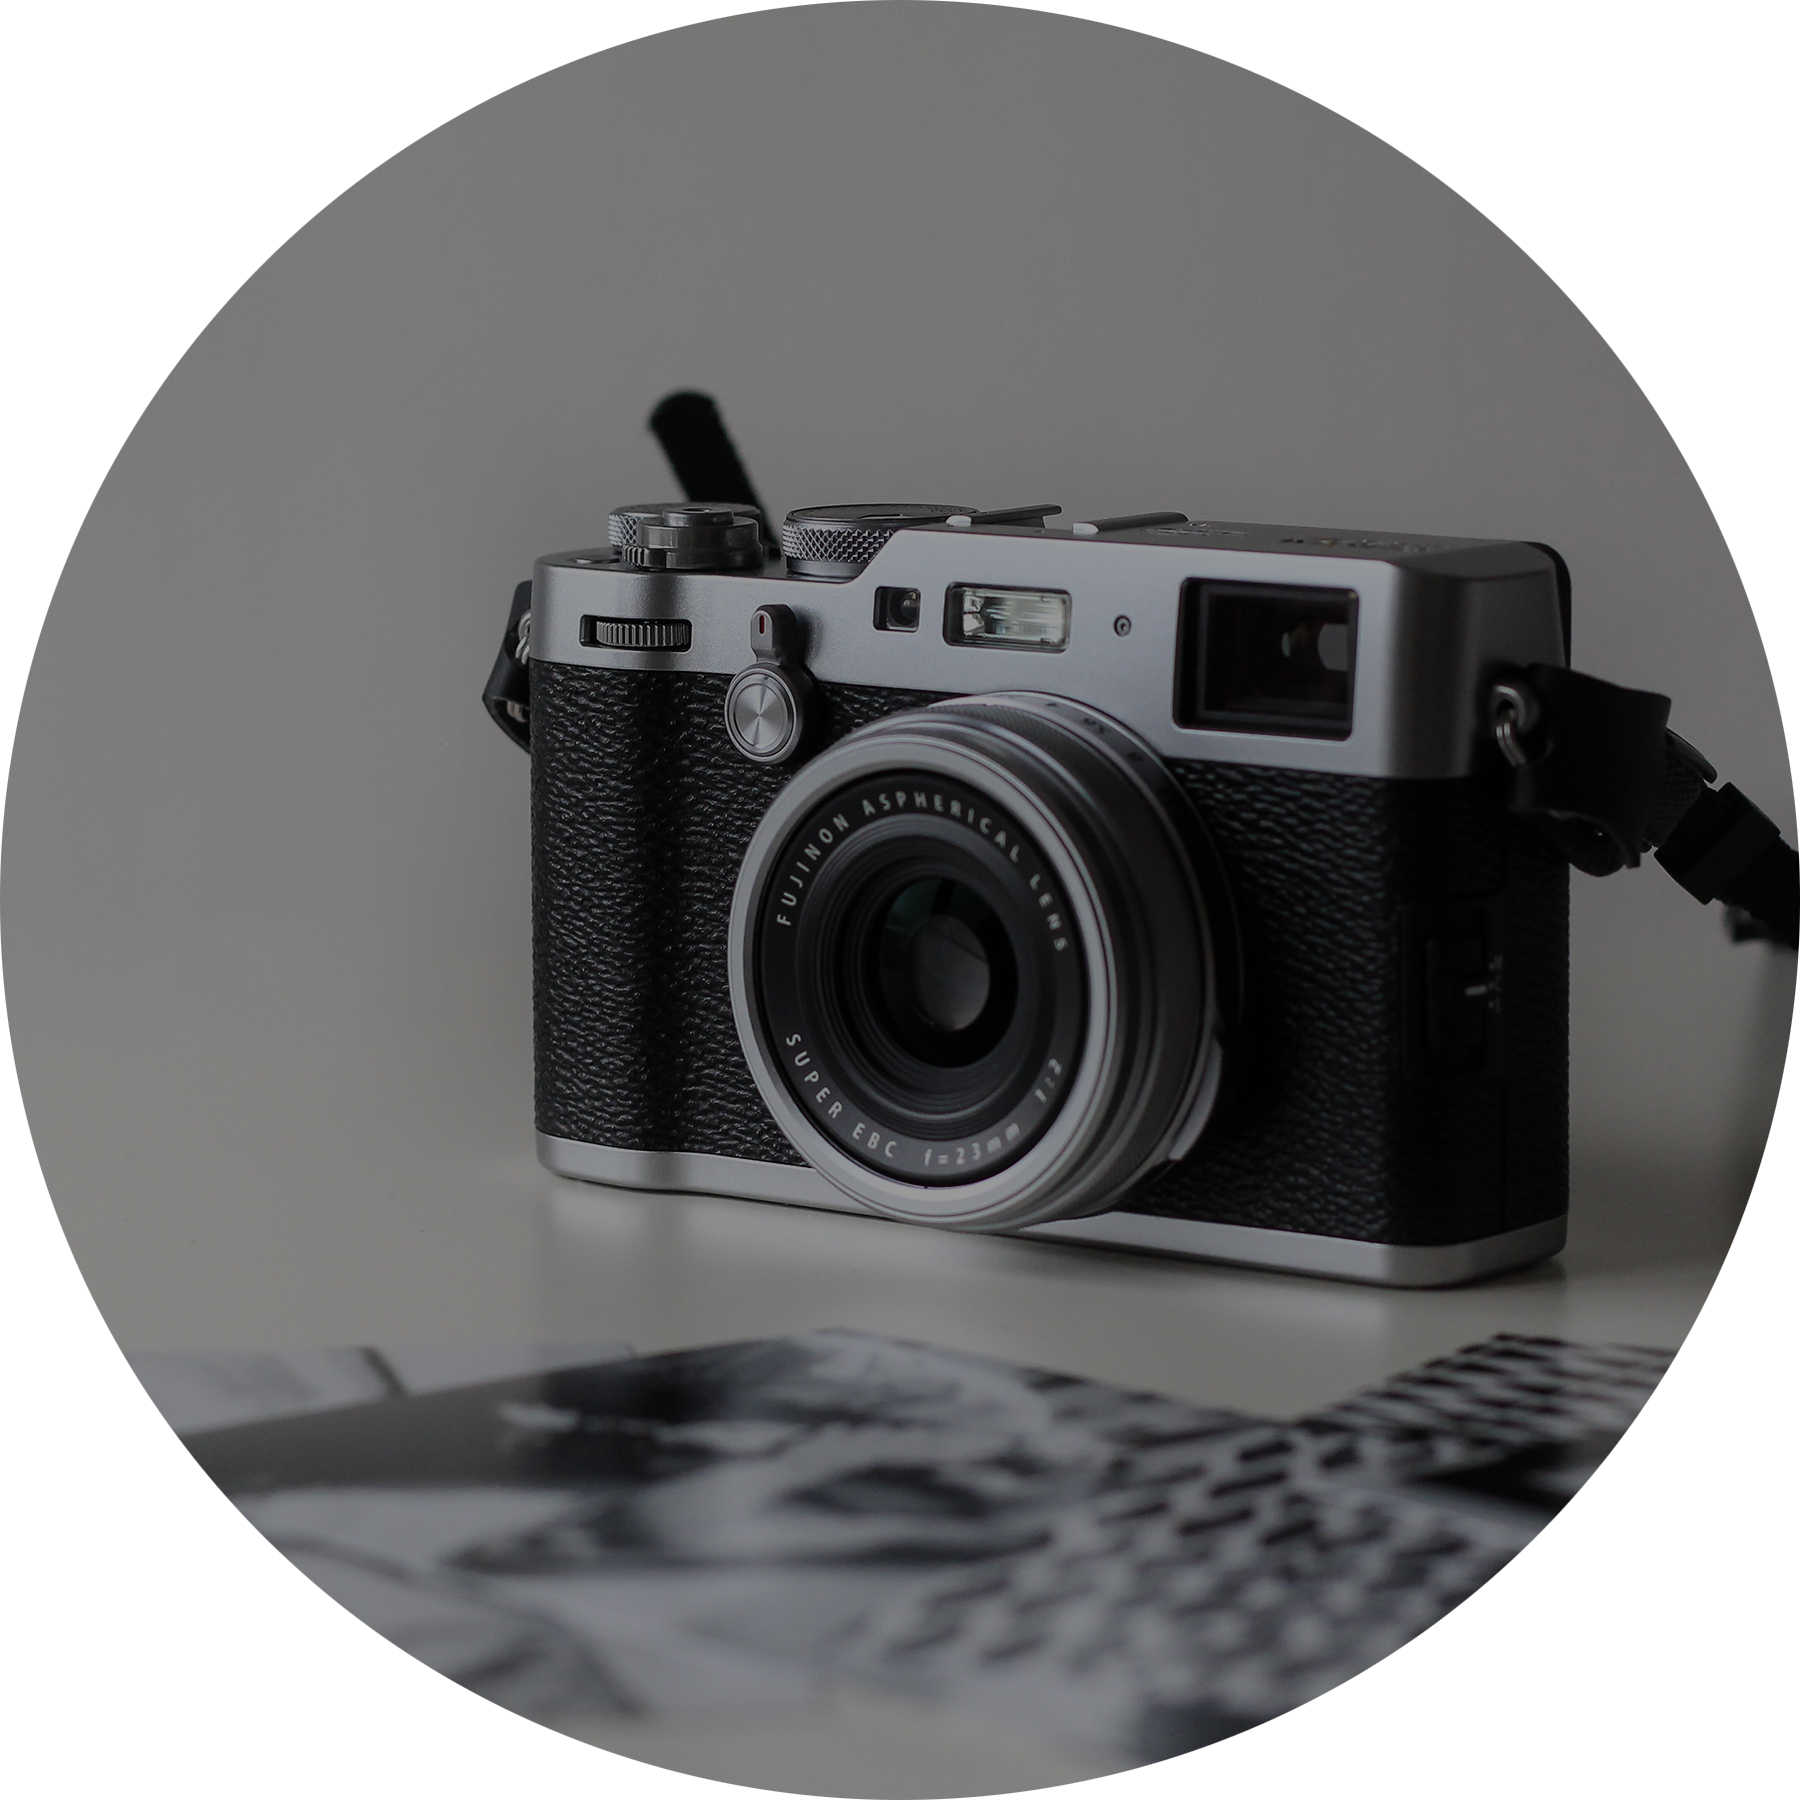 PHOTOGRAPHY - Unique shots of your product/service.